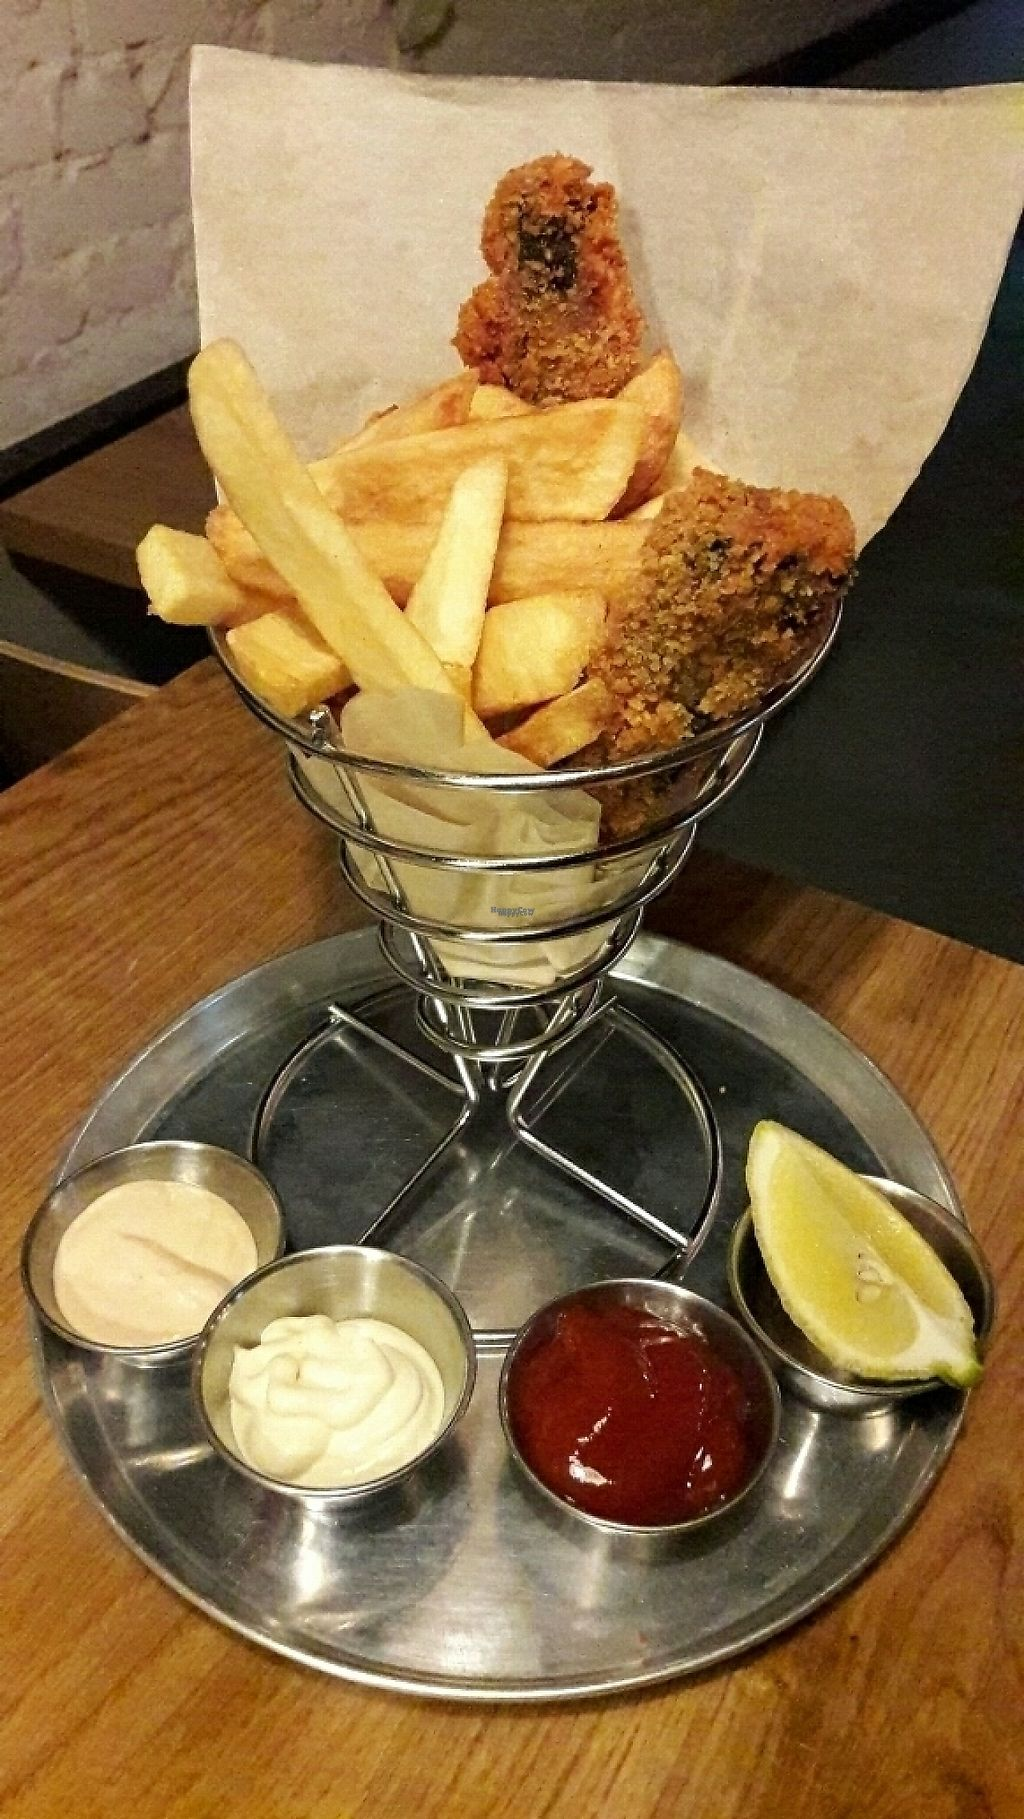 """Photo of Goodness  by <a href=""""/members/profile/OdeliaCohen"""">OdeliaCohen</a> <br/>""""Fish"""" and chips. Goodness, Tel Aviv <br/> February 23, 2017  - <a href='/contact/abuse/image/87538/229715'>Report</a>"""